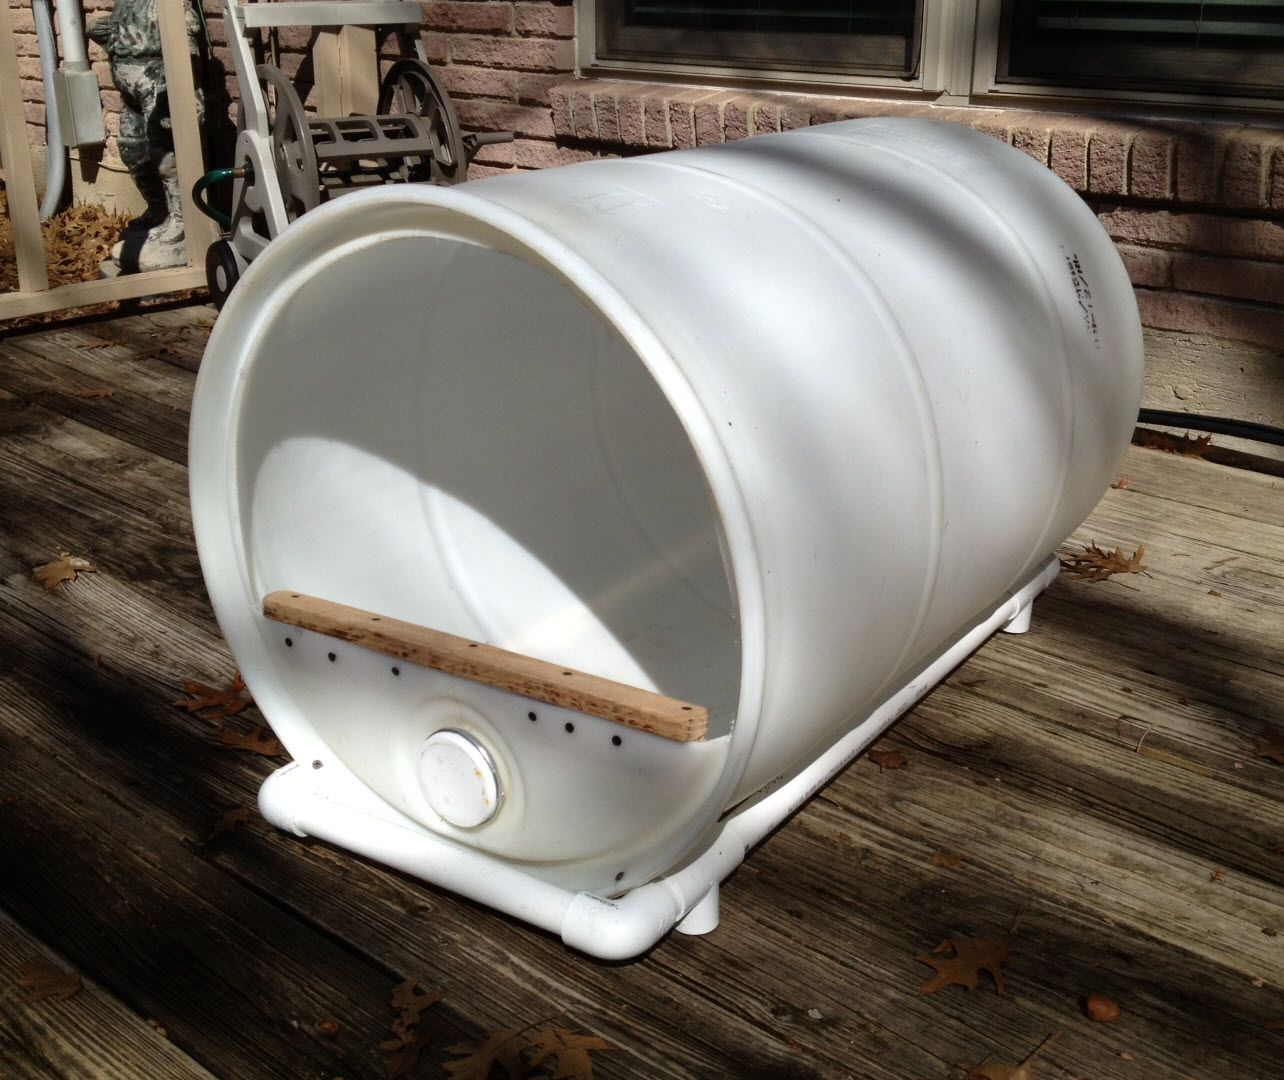 Plastic Barrel Dog House Having Dogs For Pets Dogs